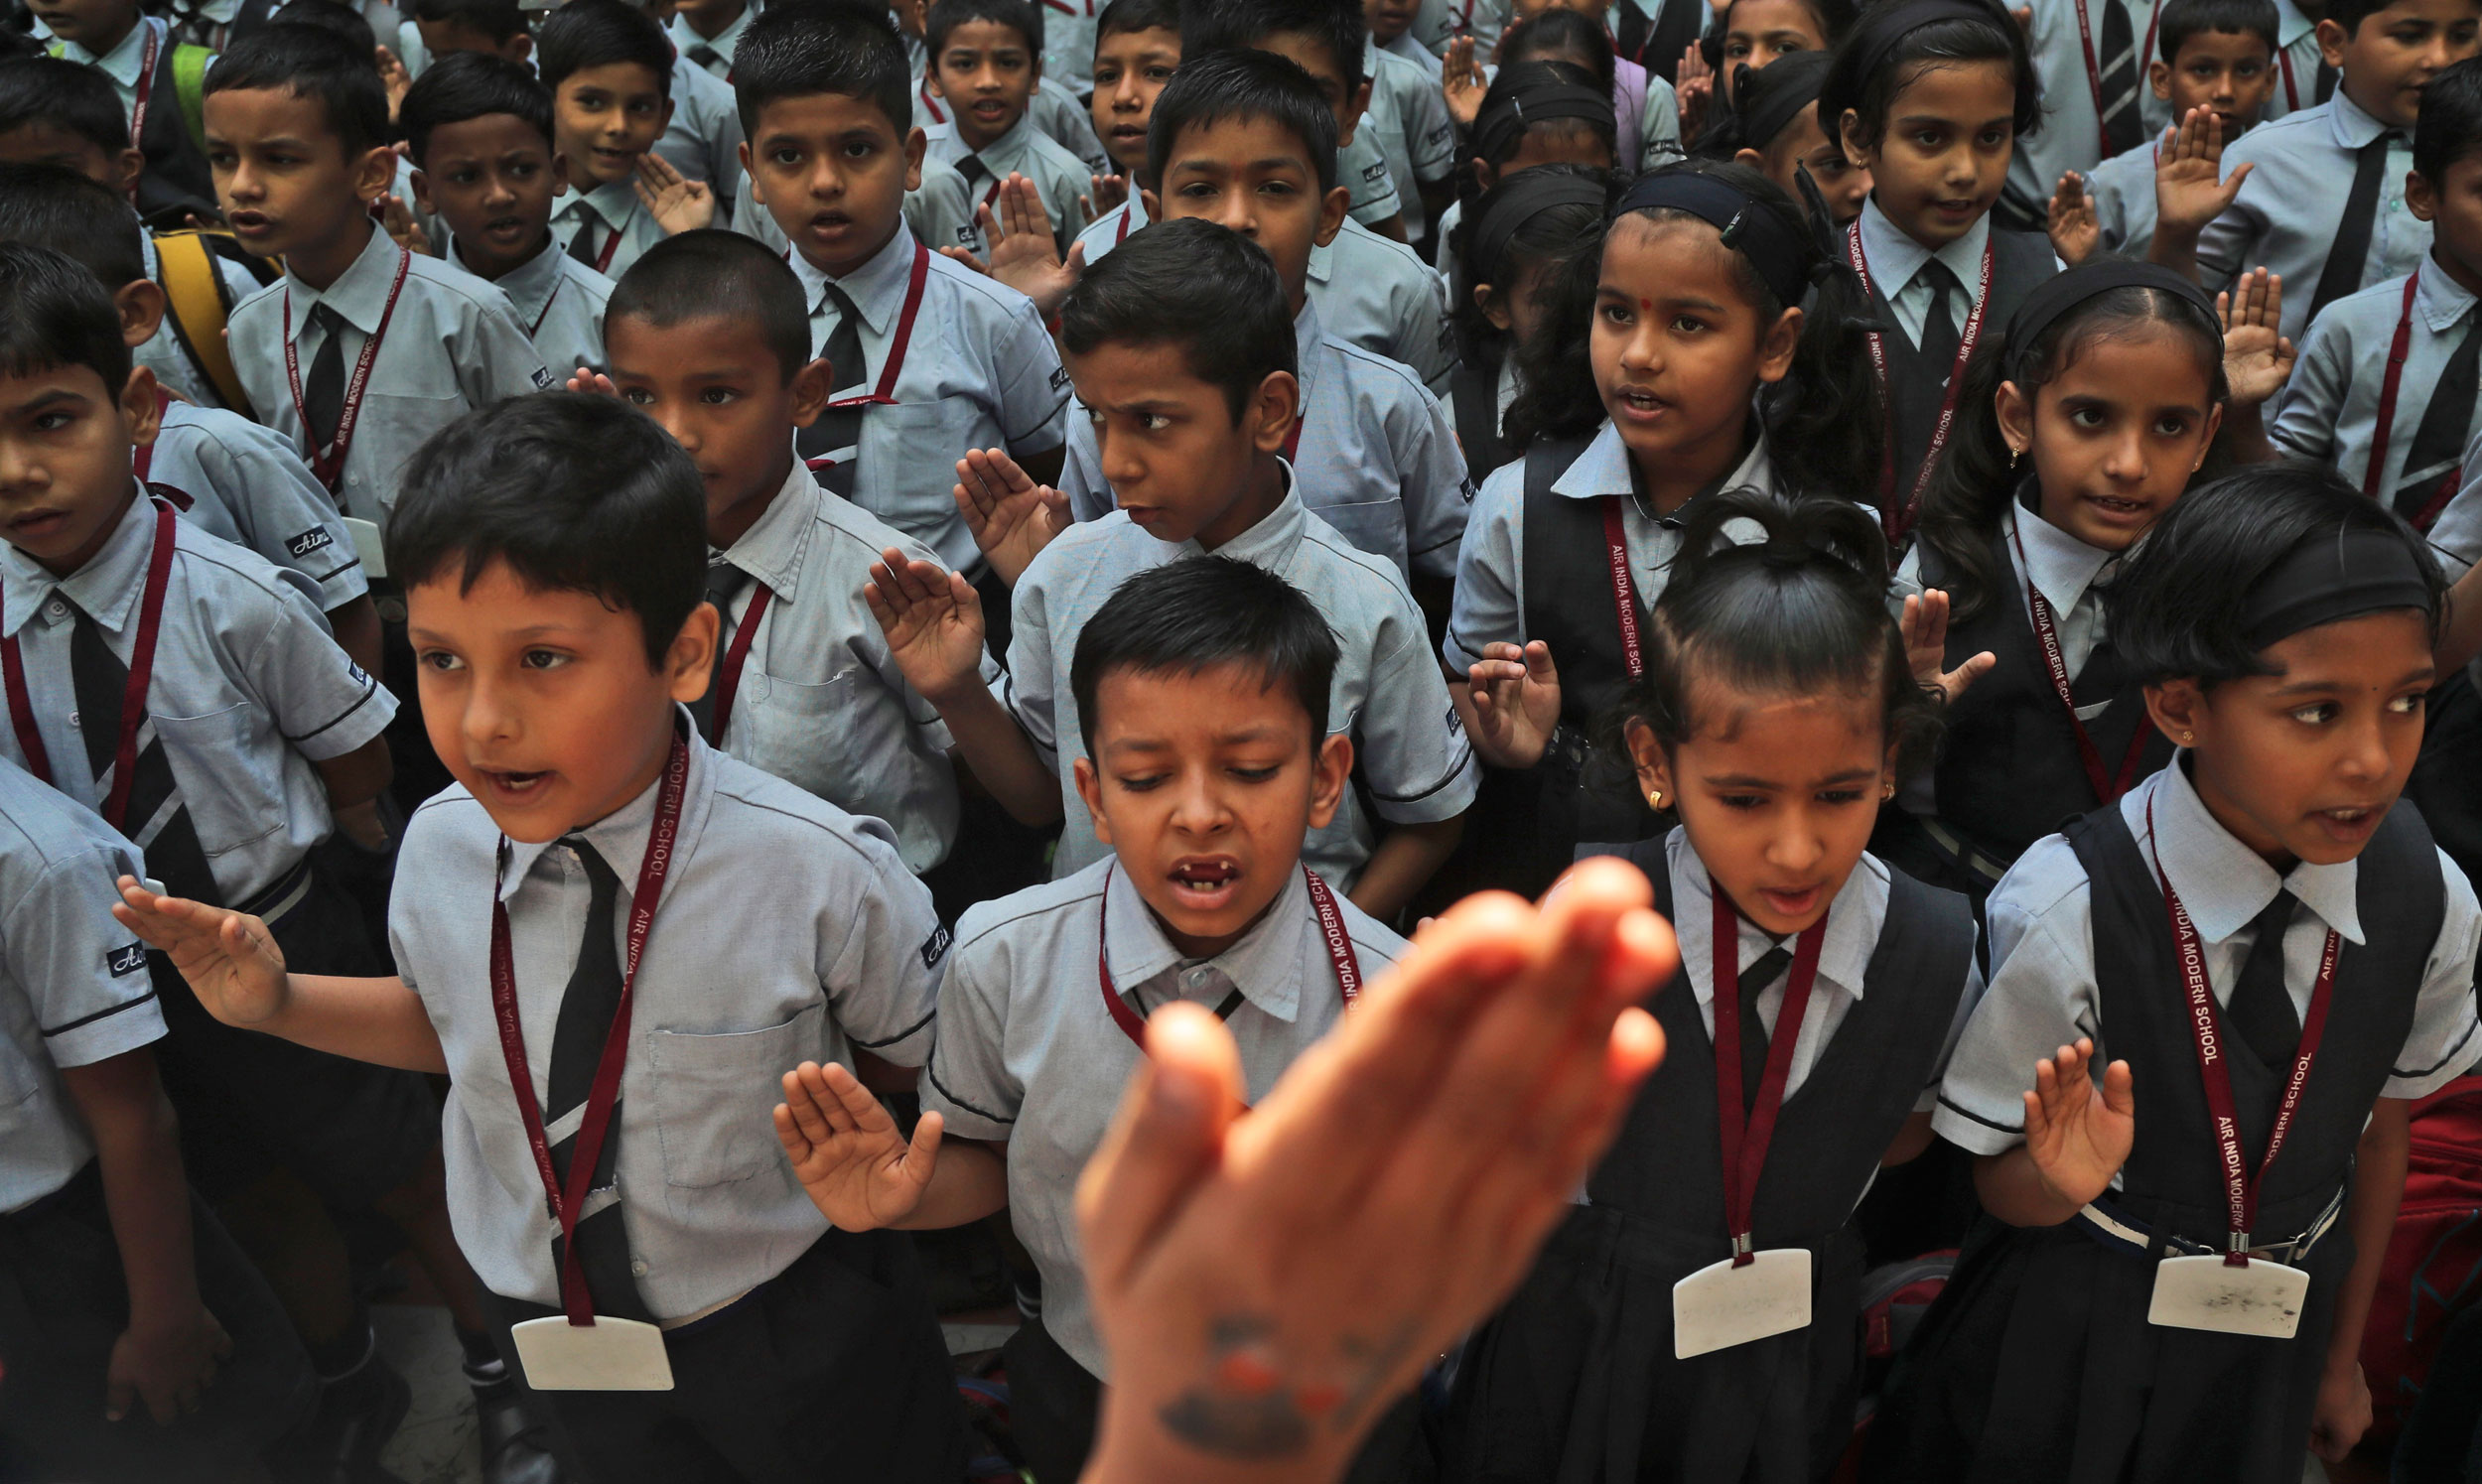 Students recite the Preamble to the Indian Constitution during their school assembly in Mumbai on Monday.